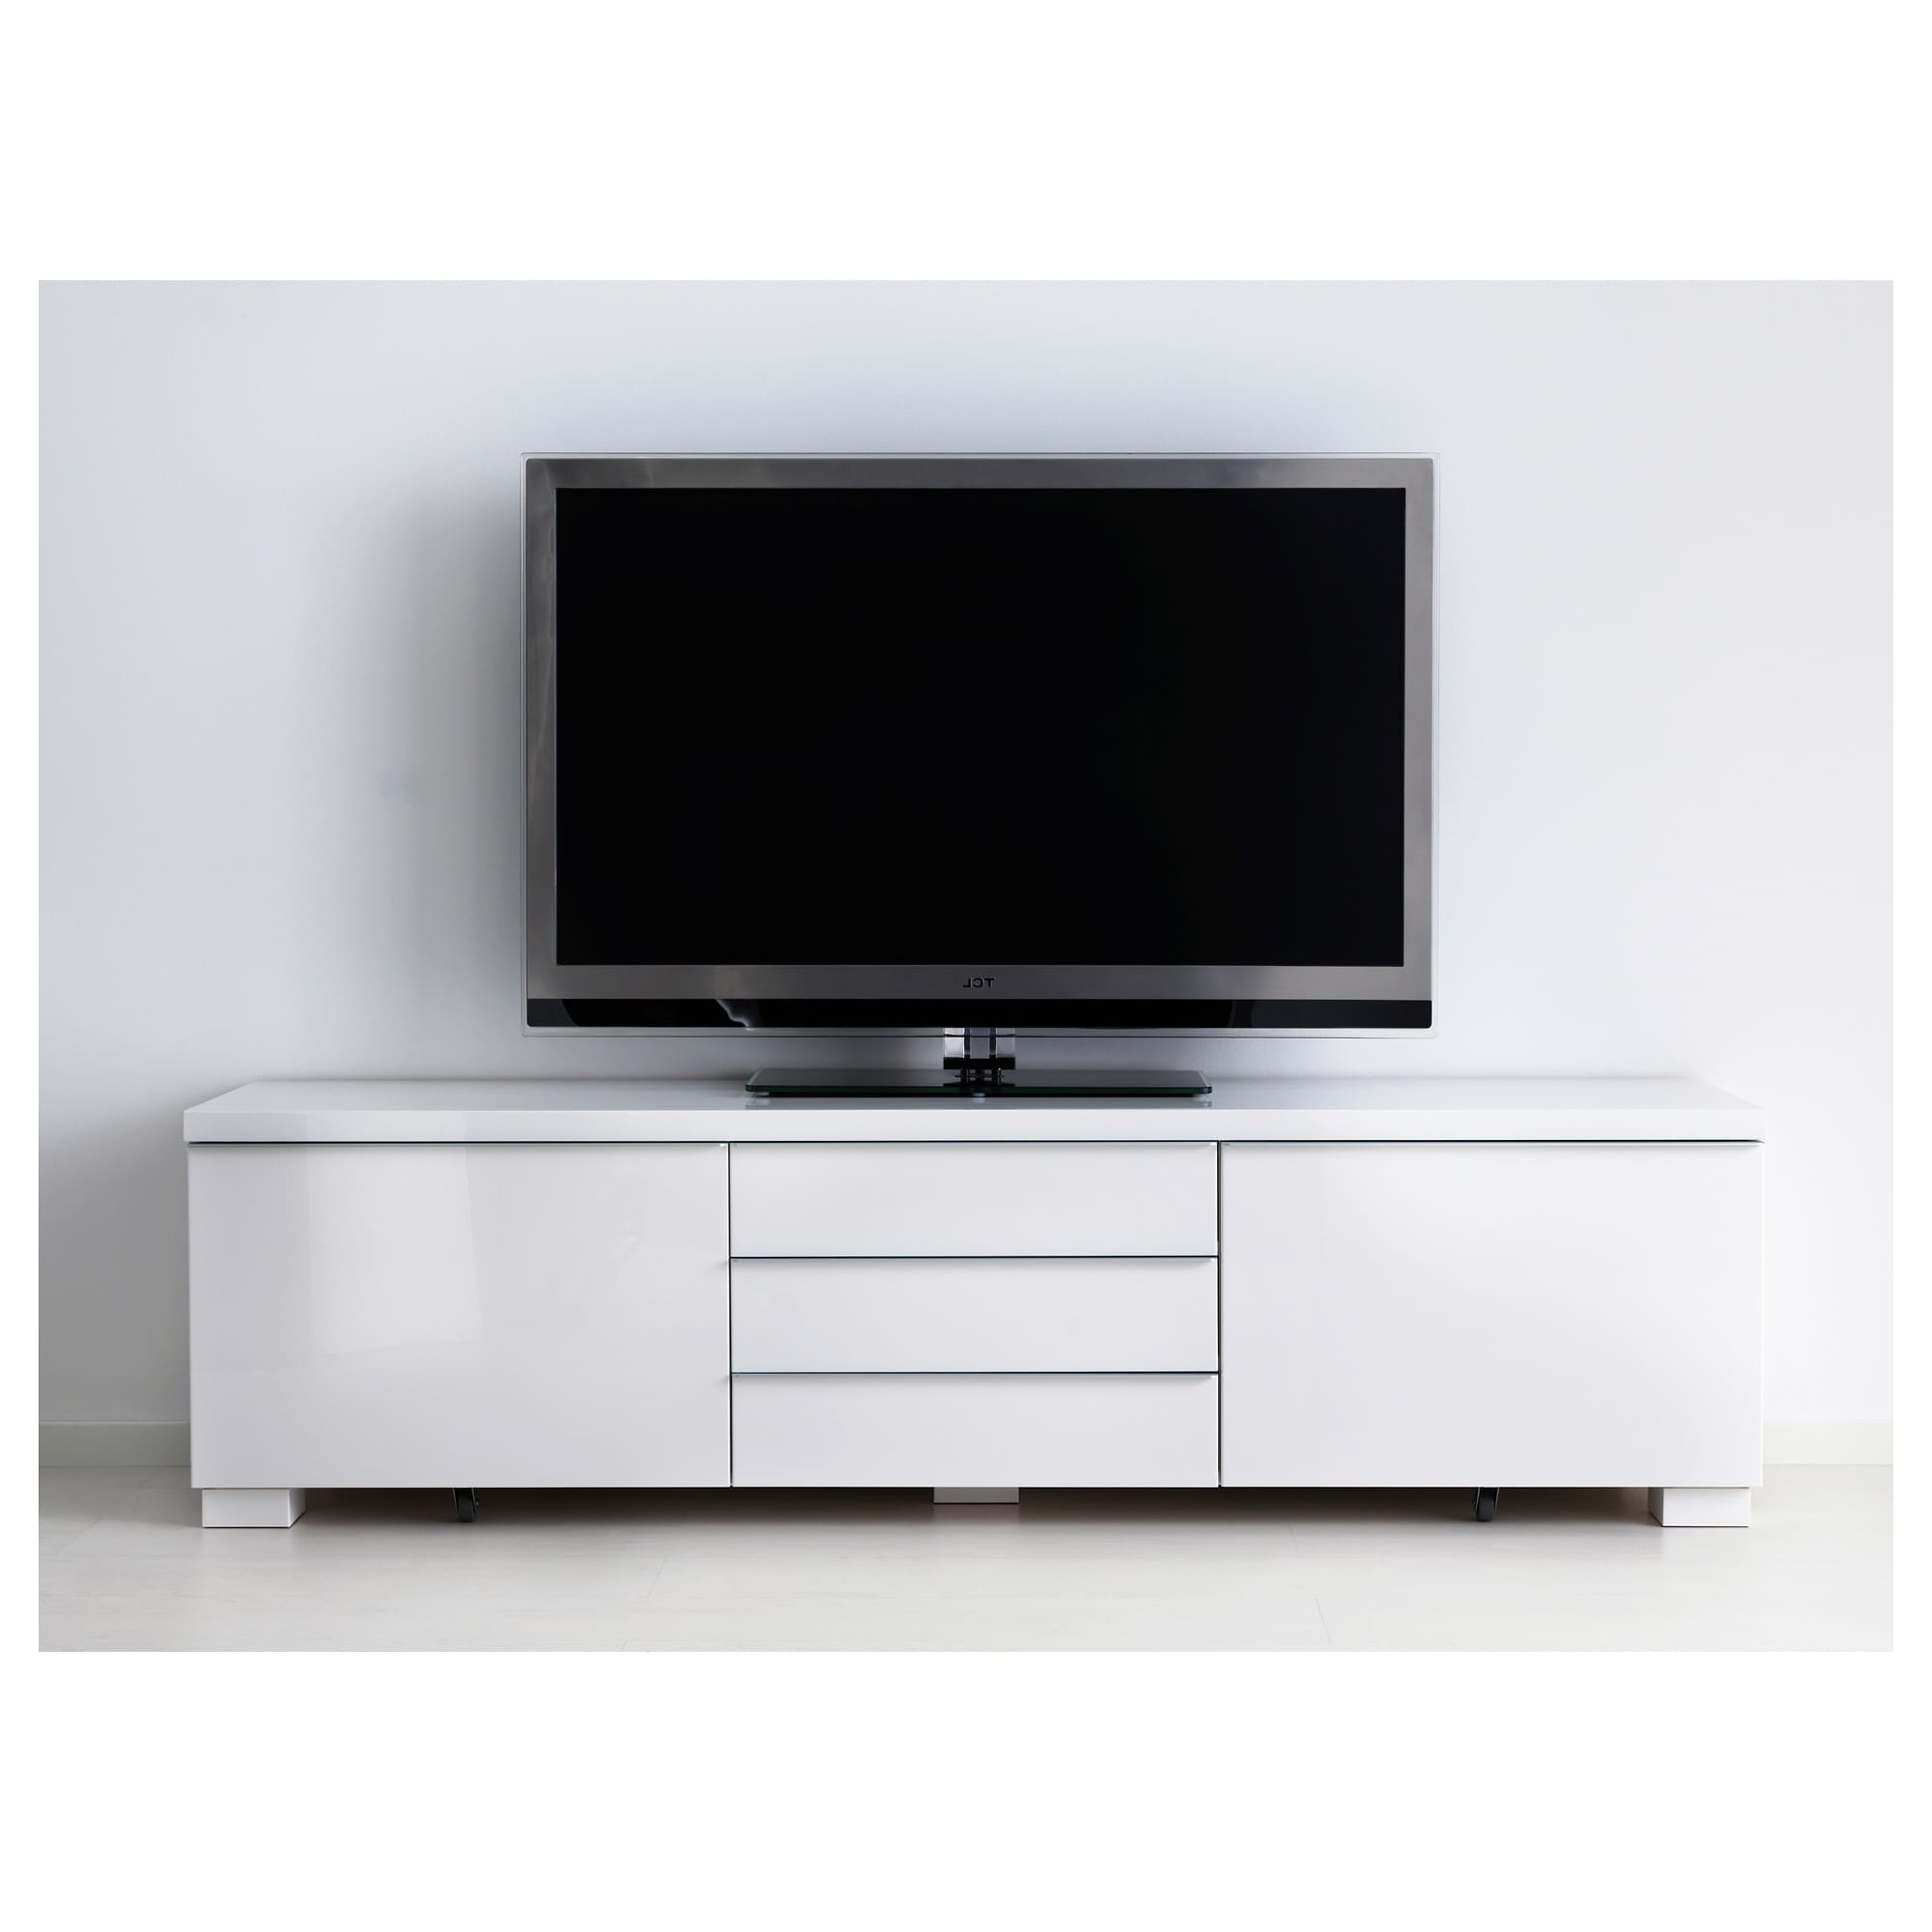 Fashionable Bestå Burs Tv Bench High Gloss White 180 X 41 X 49 Cm – Ikea For White Gloss Tv Cabinets (View 4 of 20)